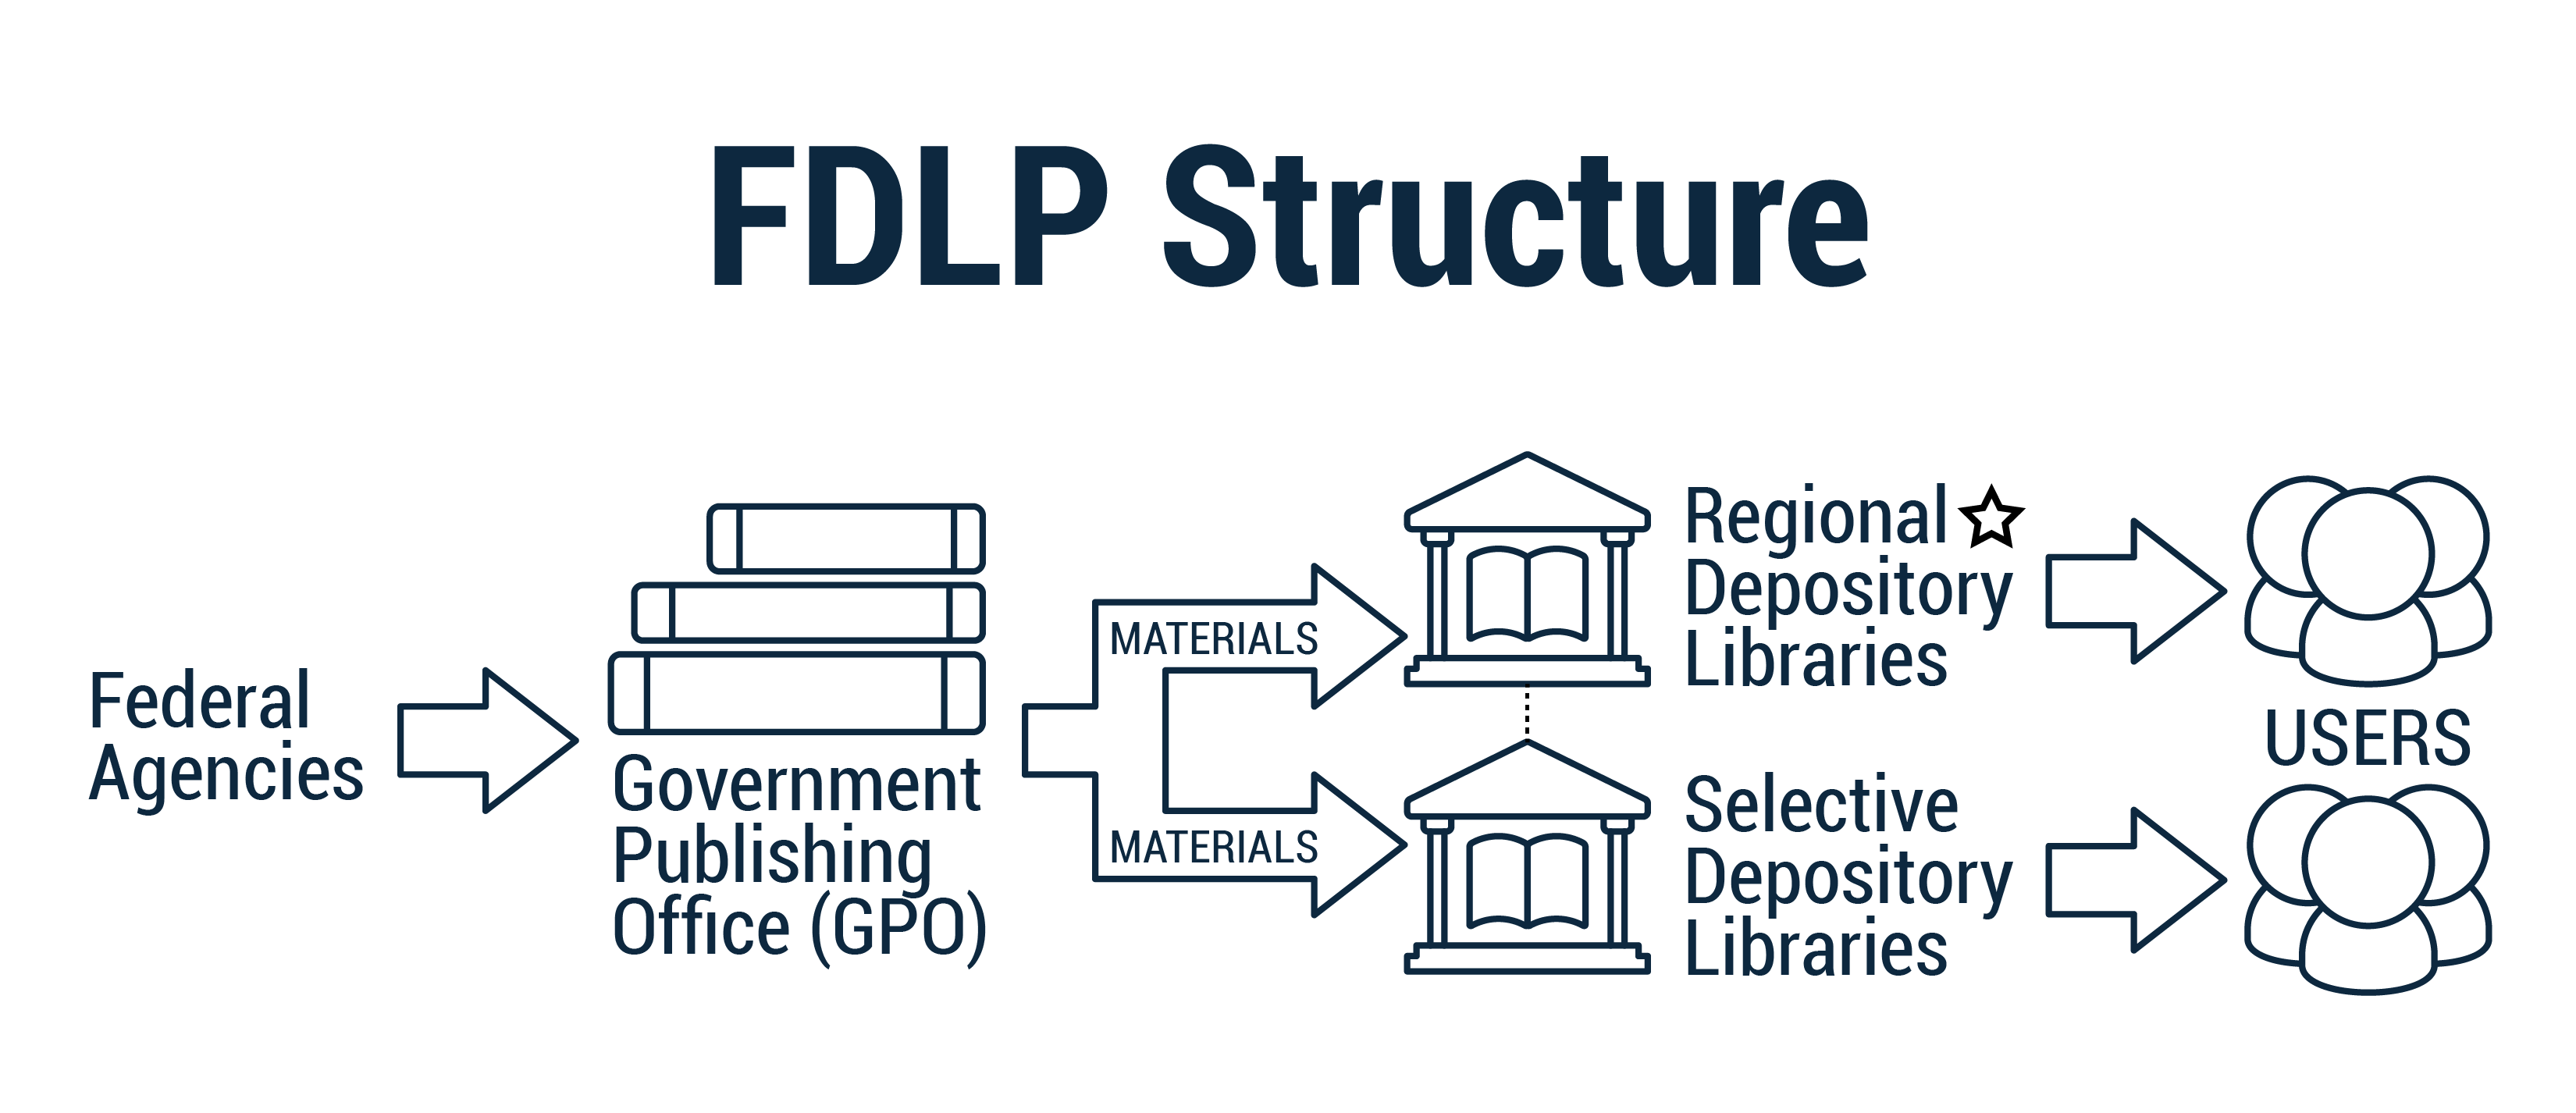 Federal agencies produce information distributed to two types of libraries: regional depositories and selective depositories. Through their own processes, the libraries provide access to users.